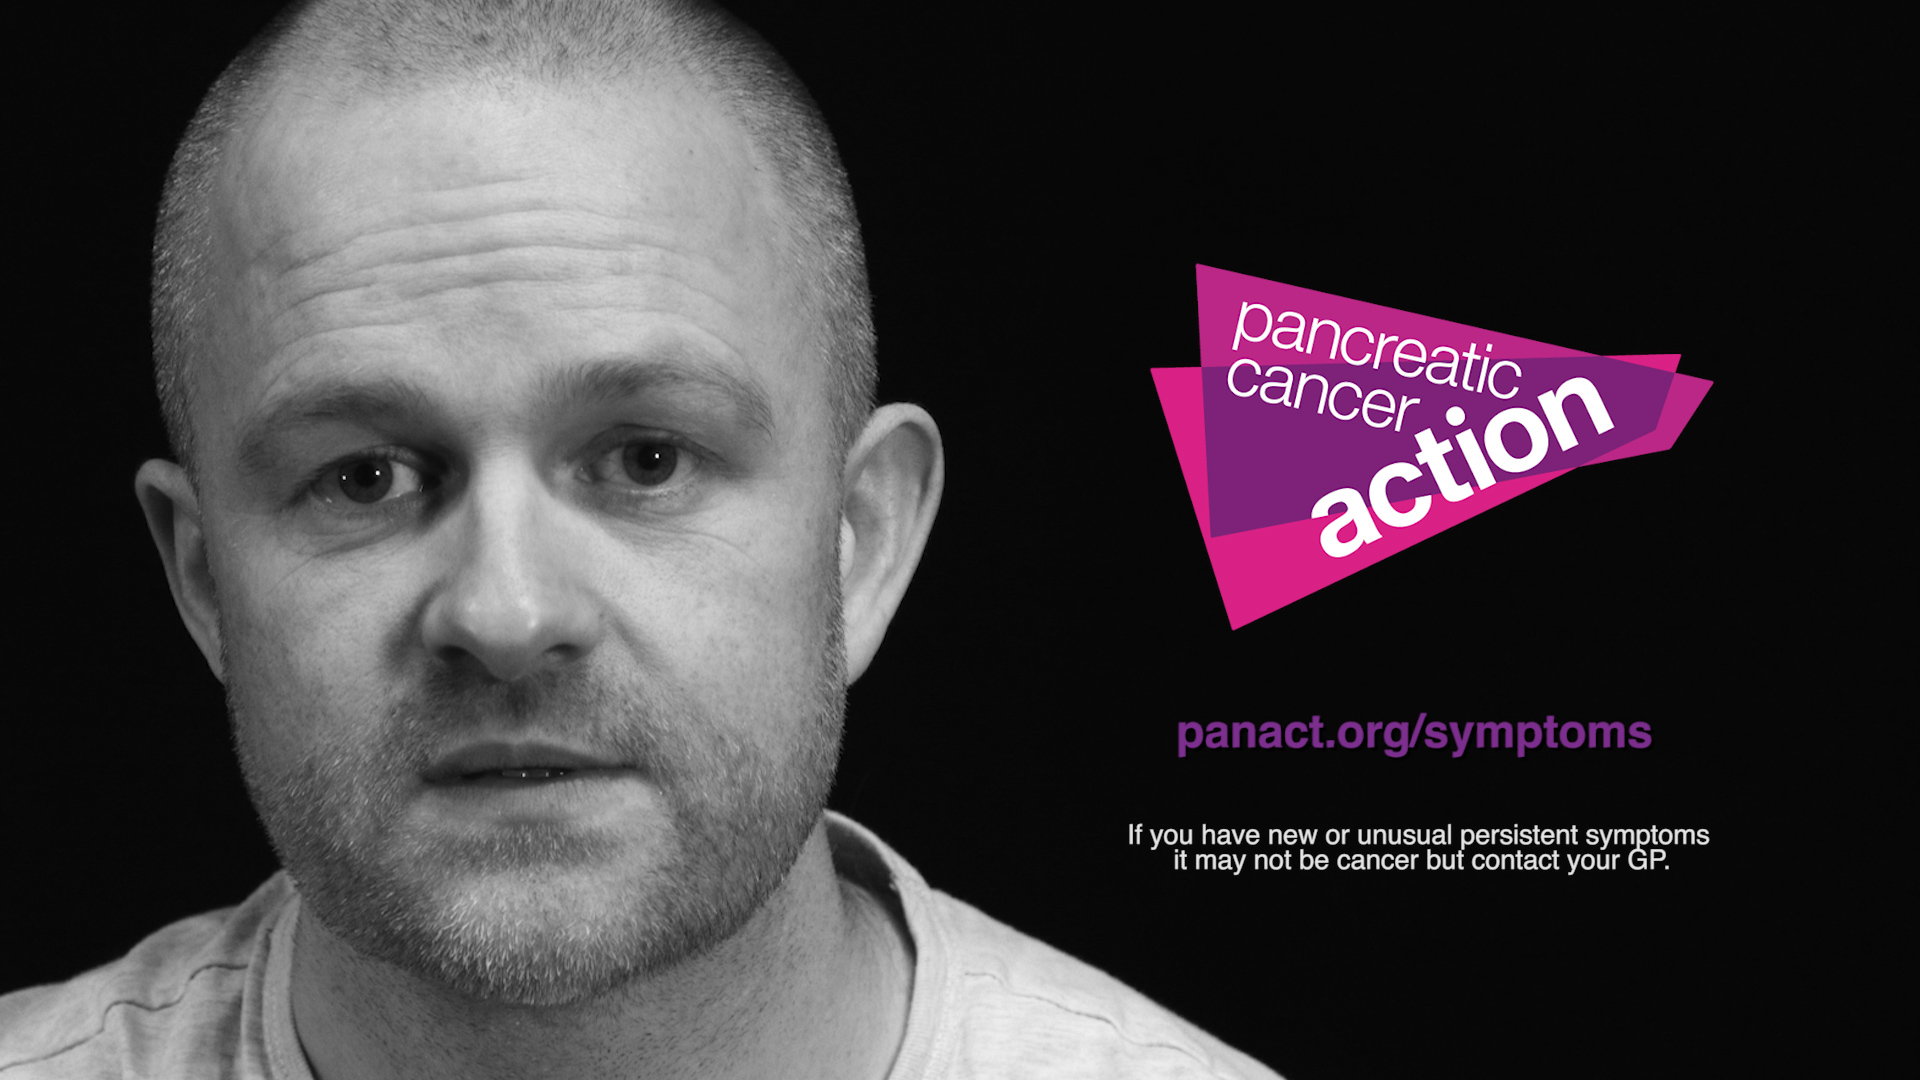 Click to watch: To find out more about the symptoms, watch our TV advert